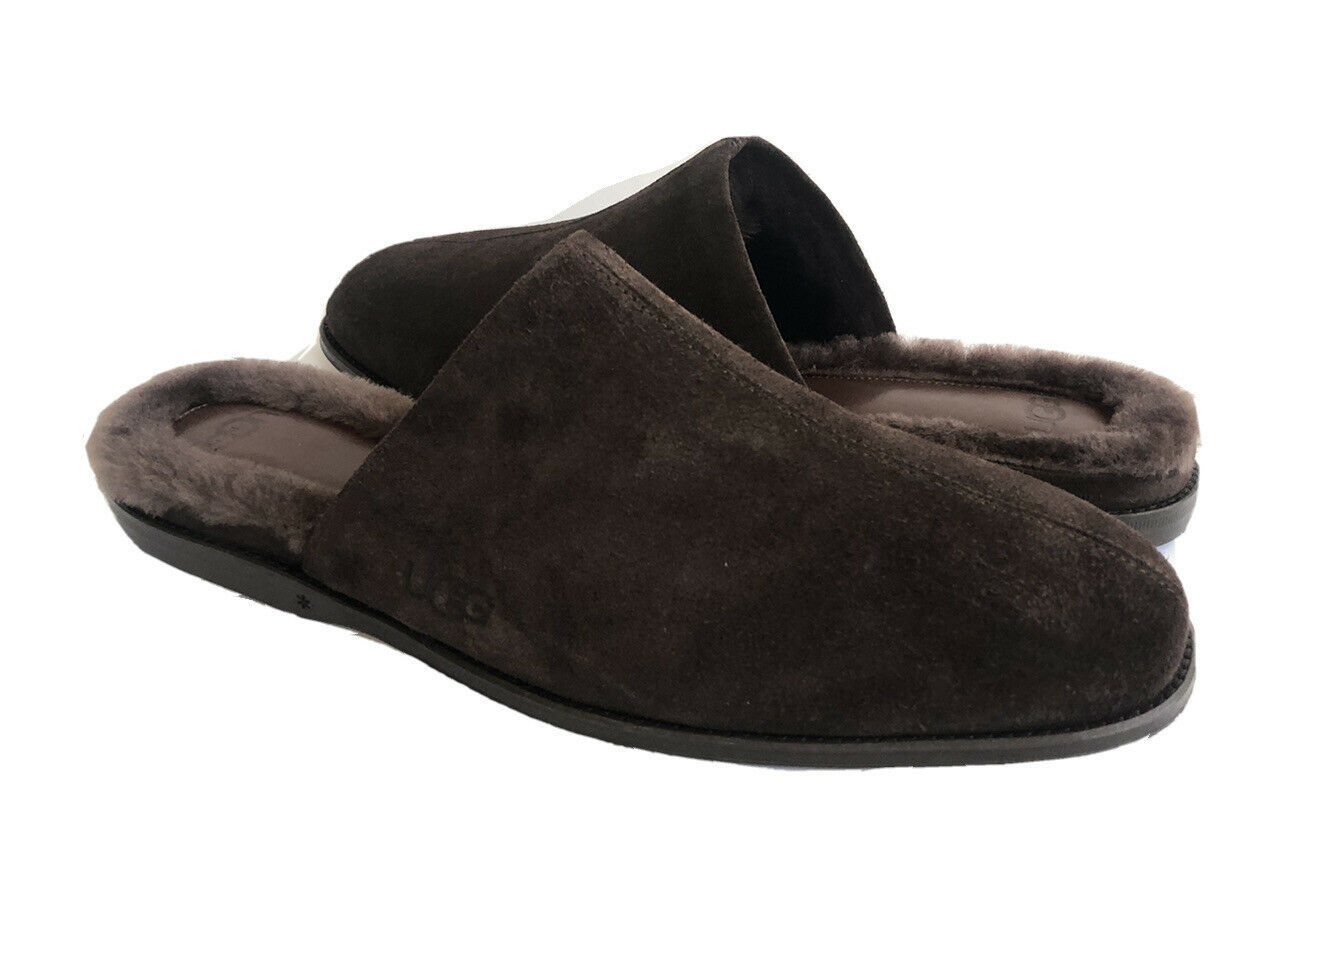 Primary image for UGG WOMEN CHATEAU SLIP ON STOUT TOSCANA FUR SUEDE SLIPPERS US 6 / EU 37 / UK 4